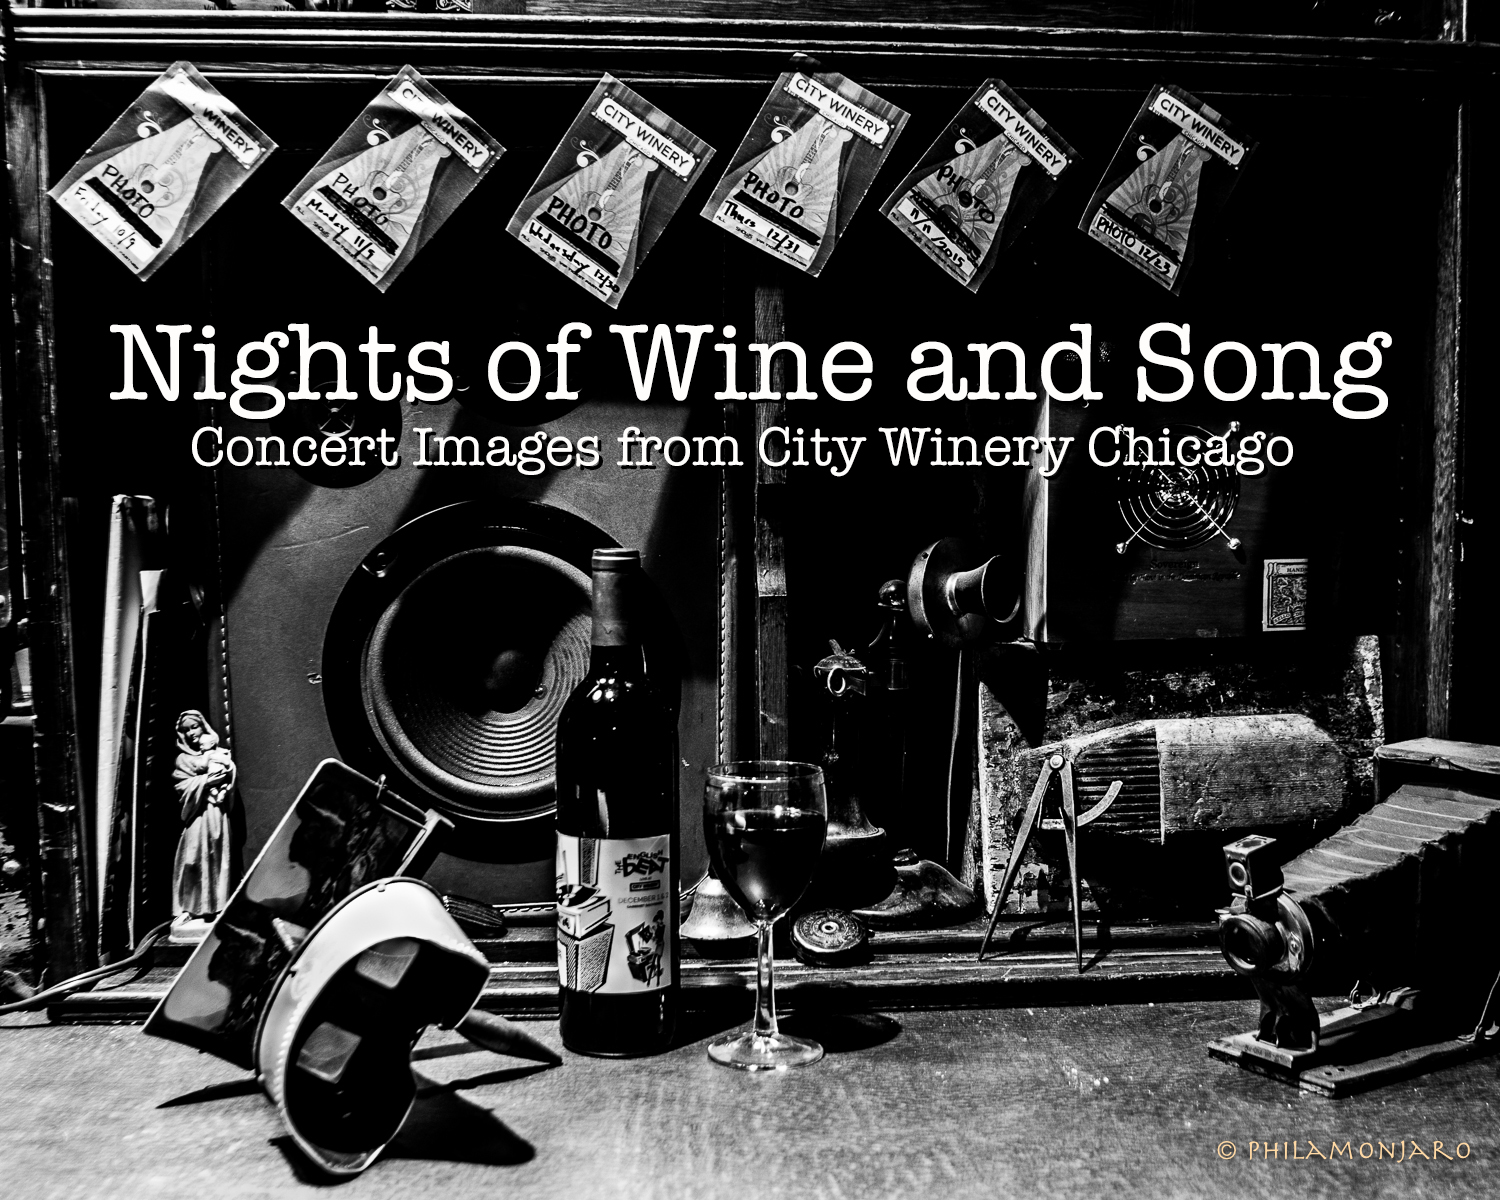 CW Nights of Wine and Song Cover w text-0006 copy copy.jpg